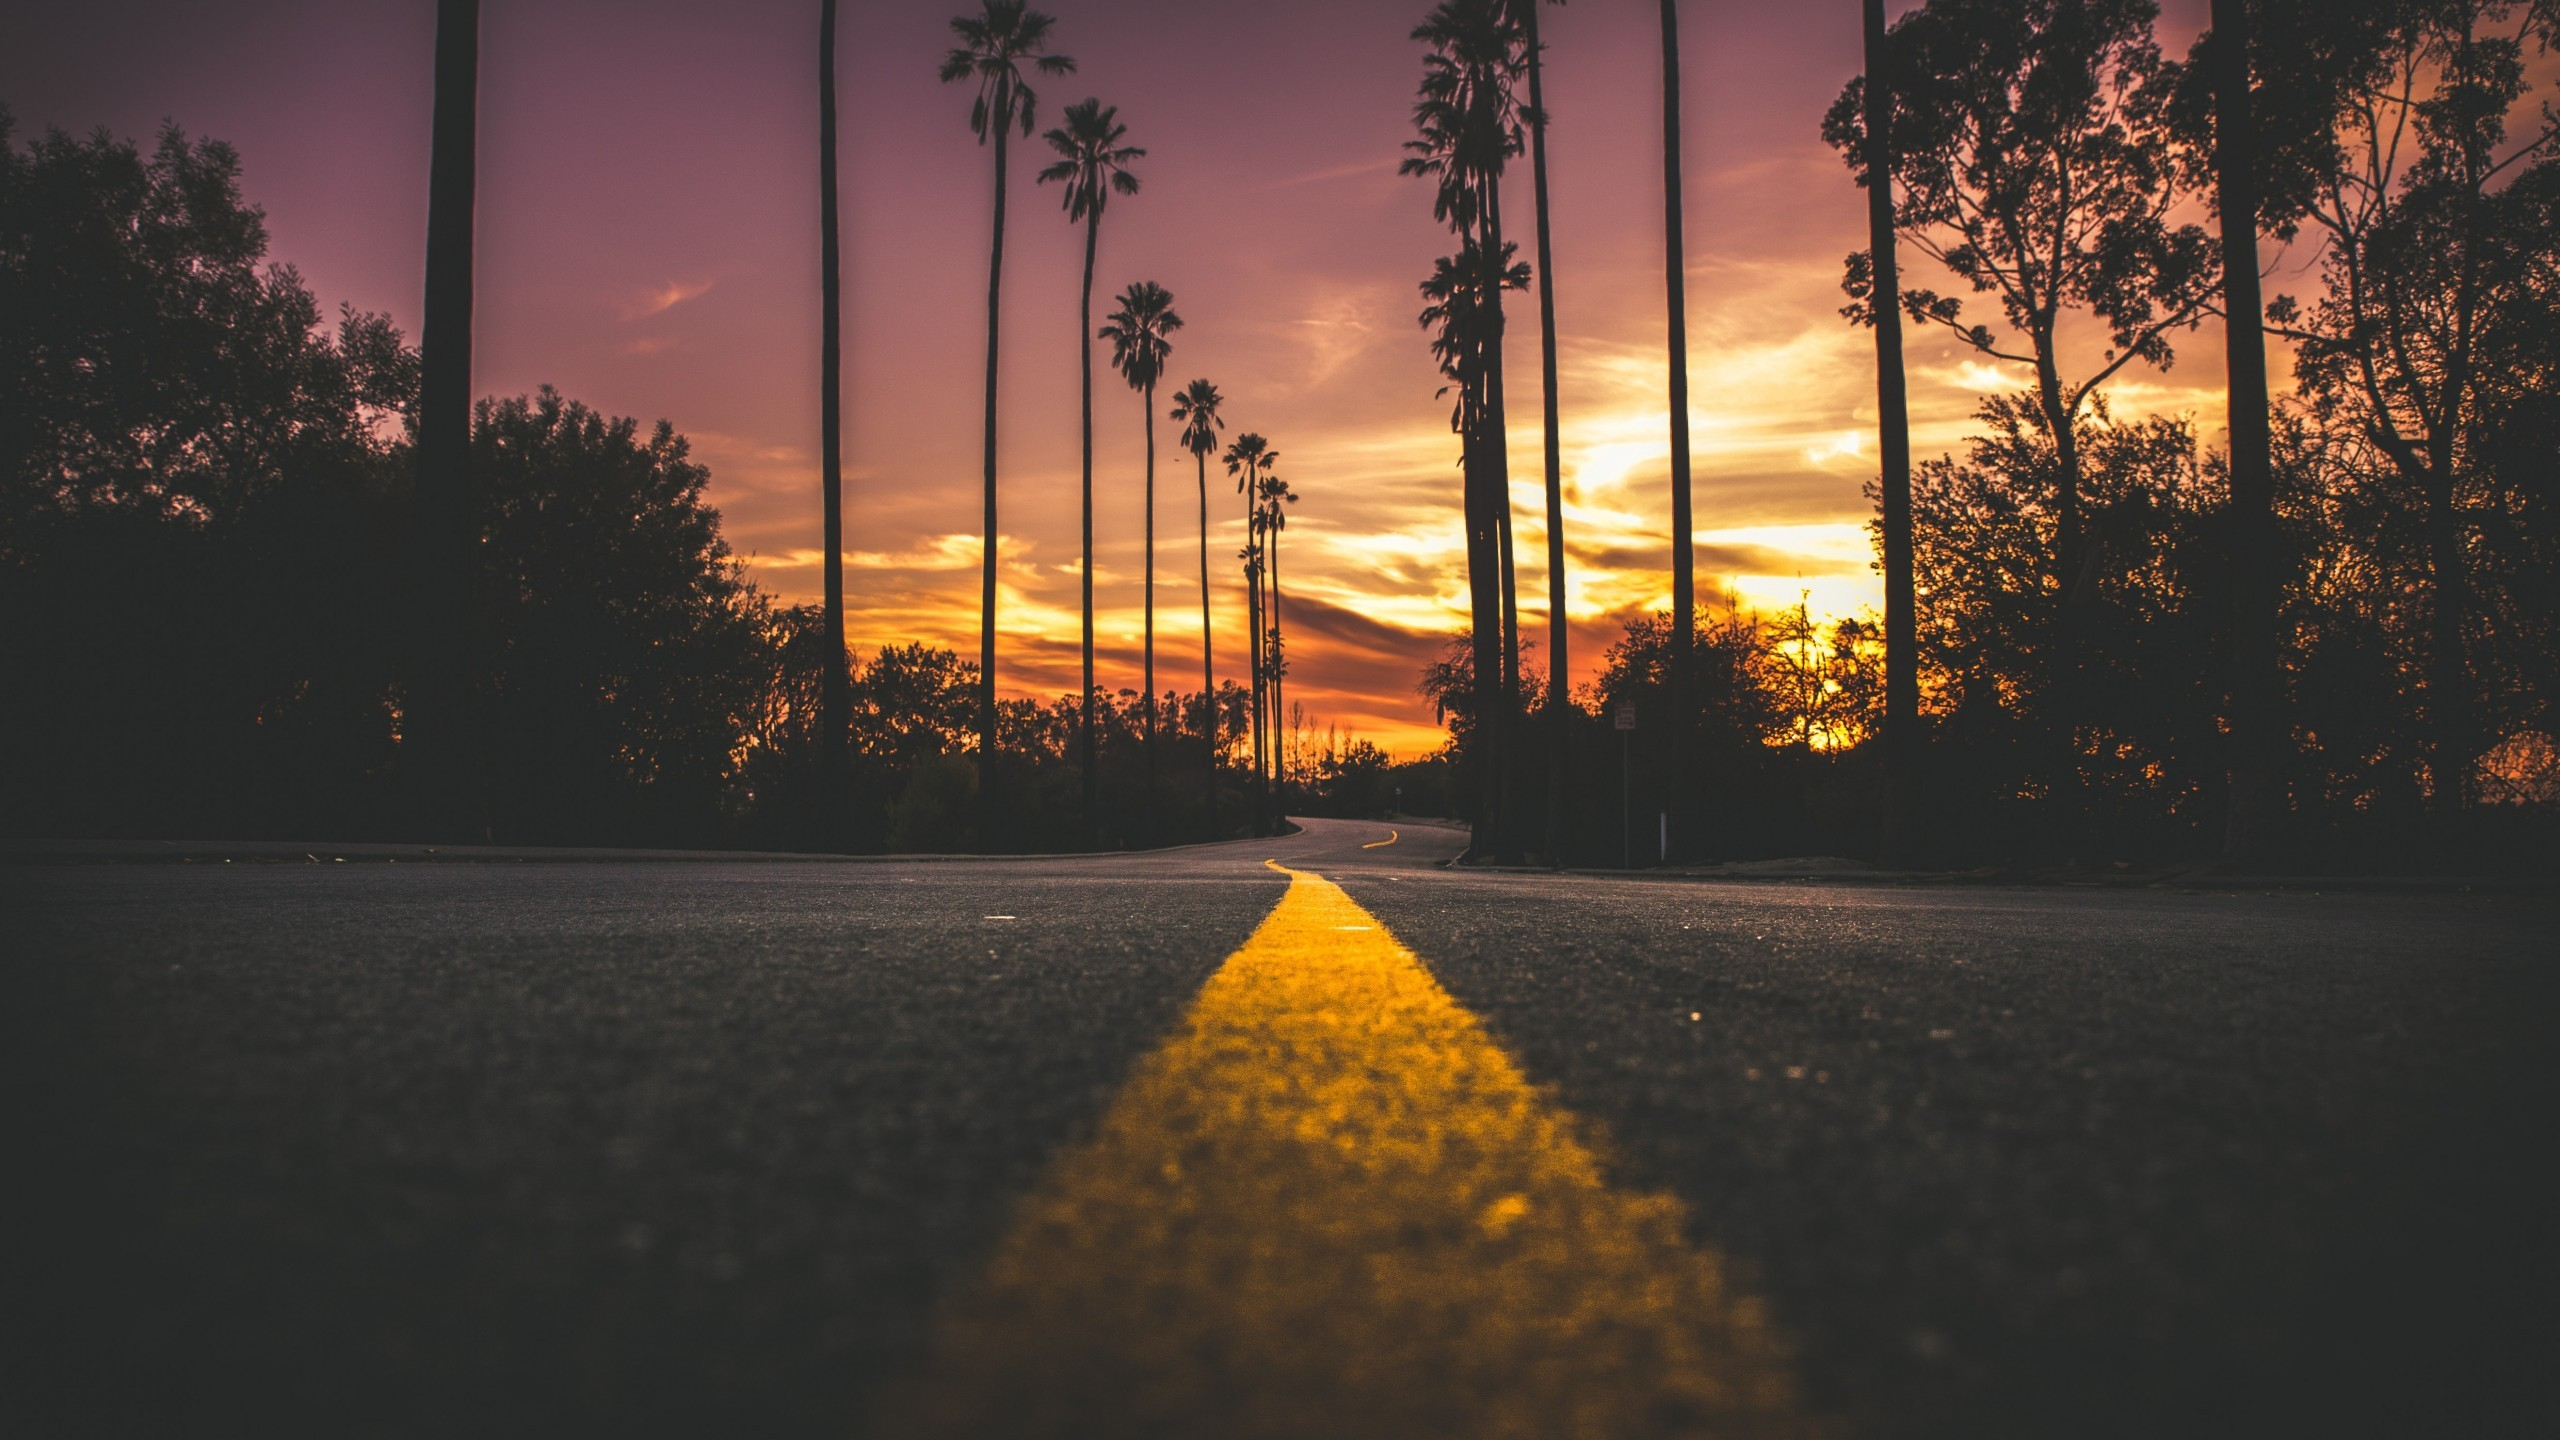 Sunset Dawn Road Scenic Trees Travel Travelling Wallpaper For Laptop Hd 2560x1440 Wallpaper Teahub Io